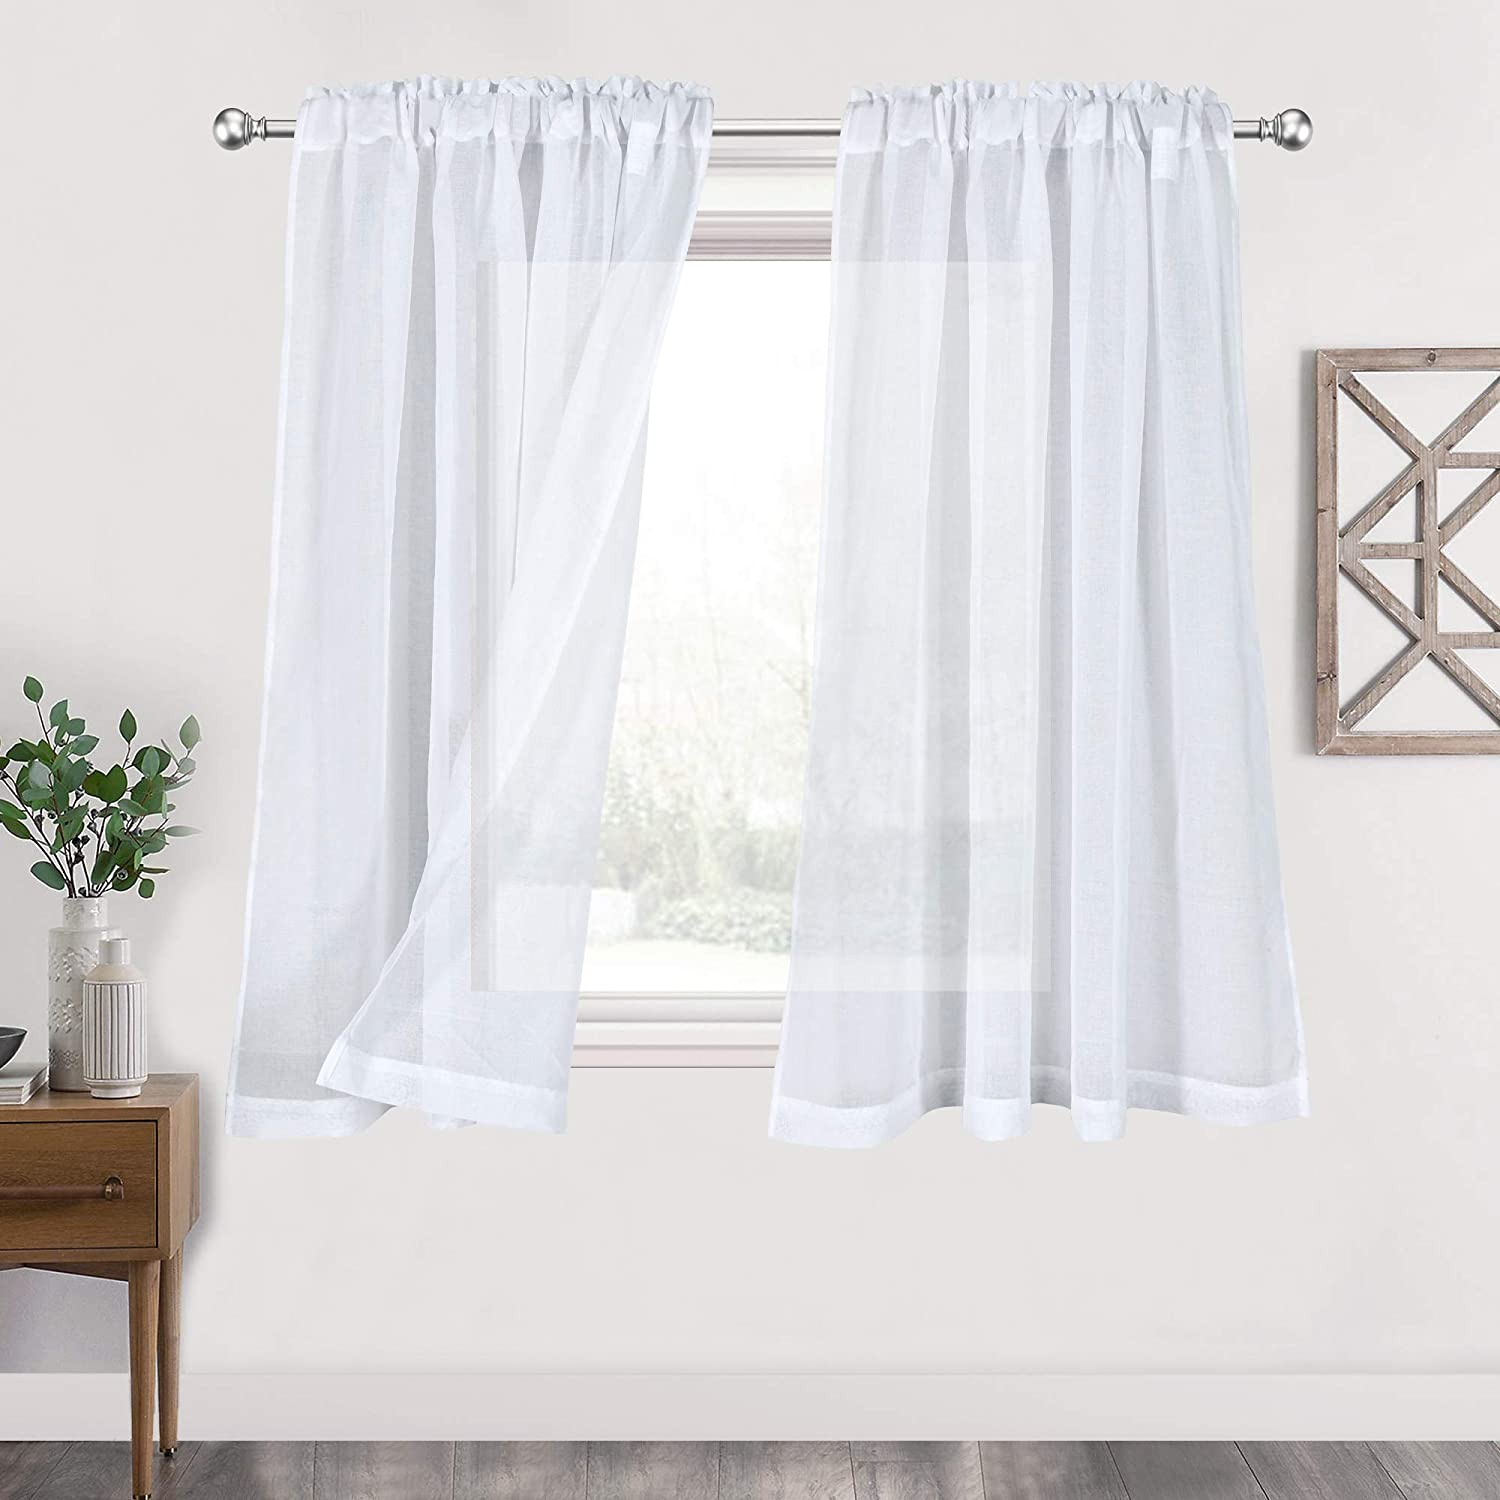 White Sheer Curtains 45 Inches Long for Kitchen Rod Pocket Semi Sheer Curtains Drapes for Bedroom Living Room Window Treatment Faux Linen Sheer Draperies Crinkle Ruffled Curtains 2 Pack 52Wx45L